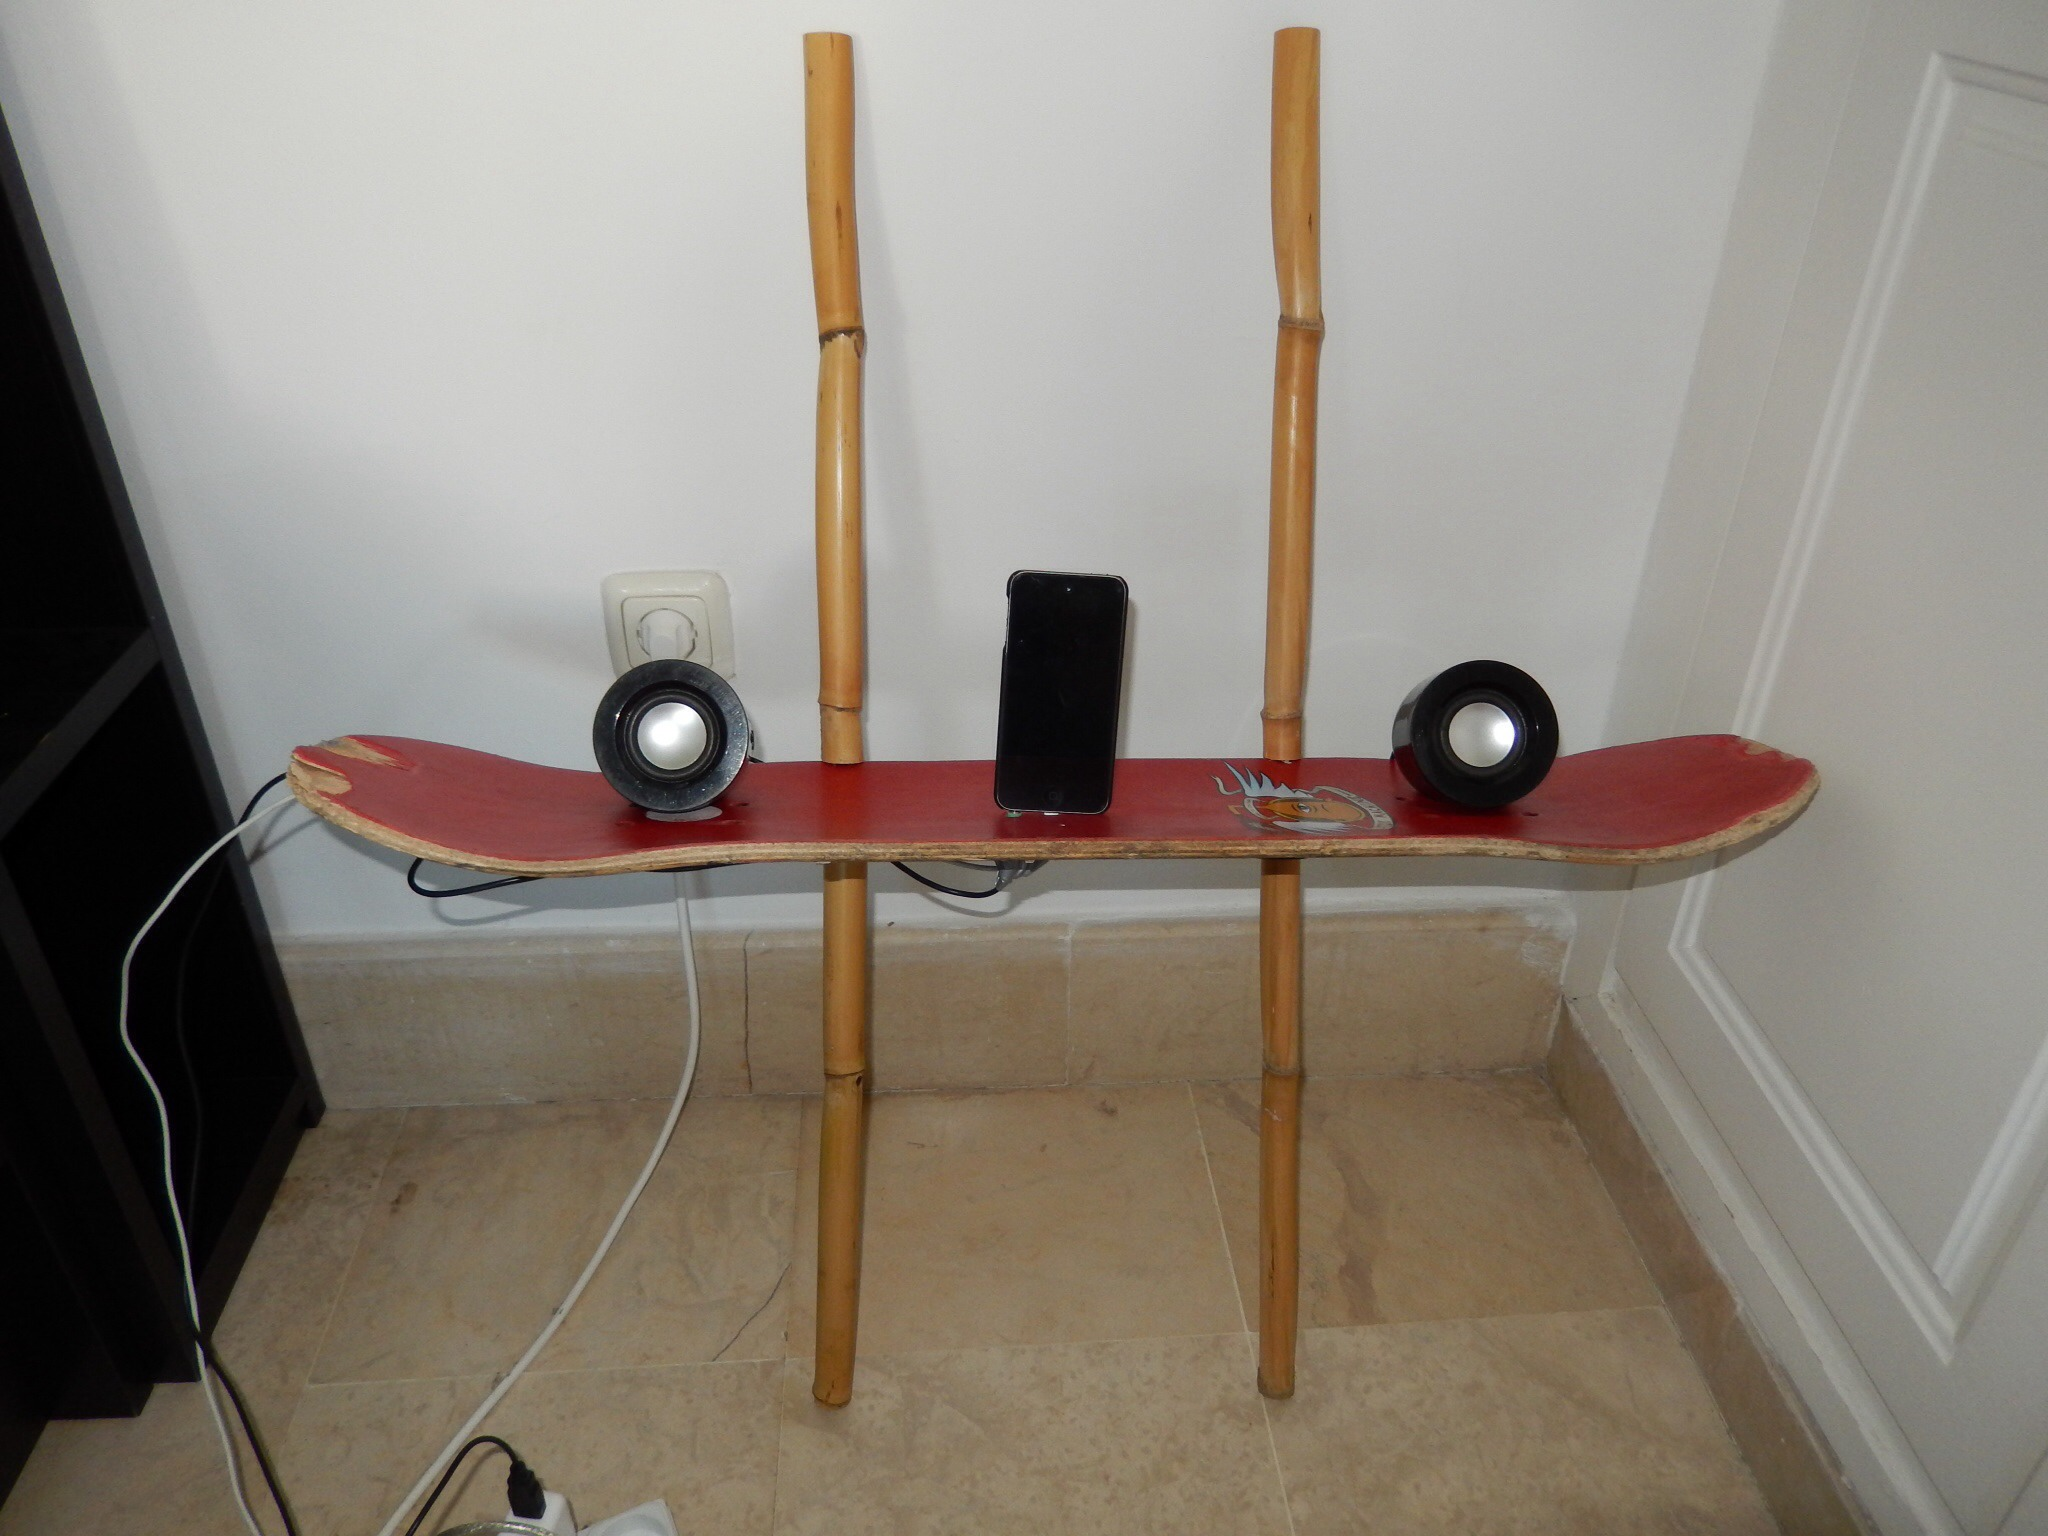 Picture of How to Make a Wall Hanging Audio/iPod Platform From an Old Skateboard